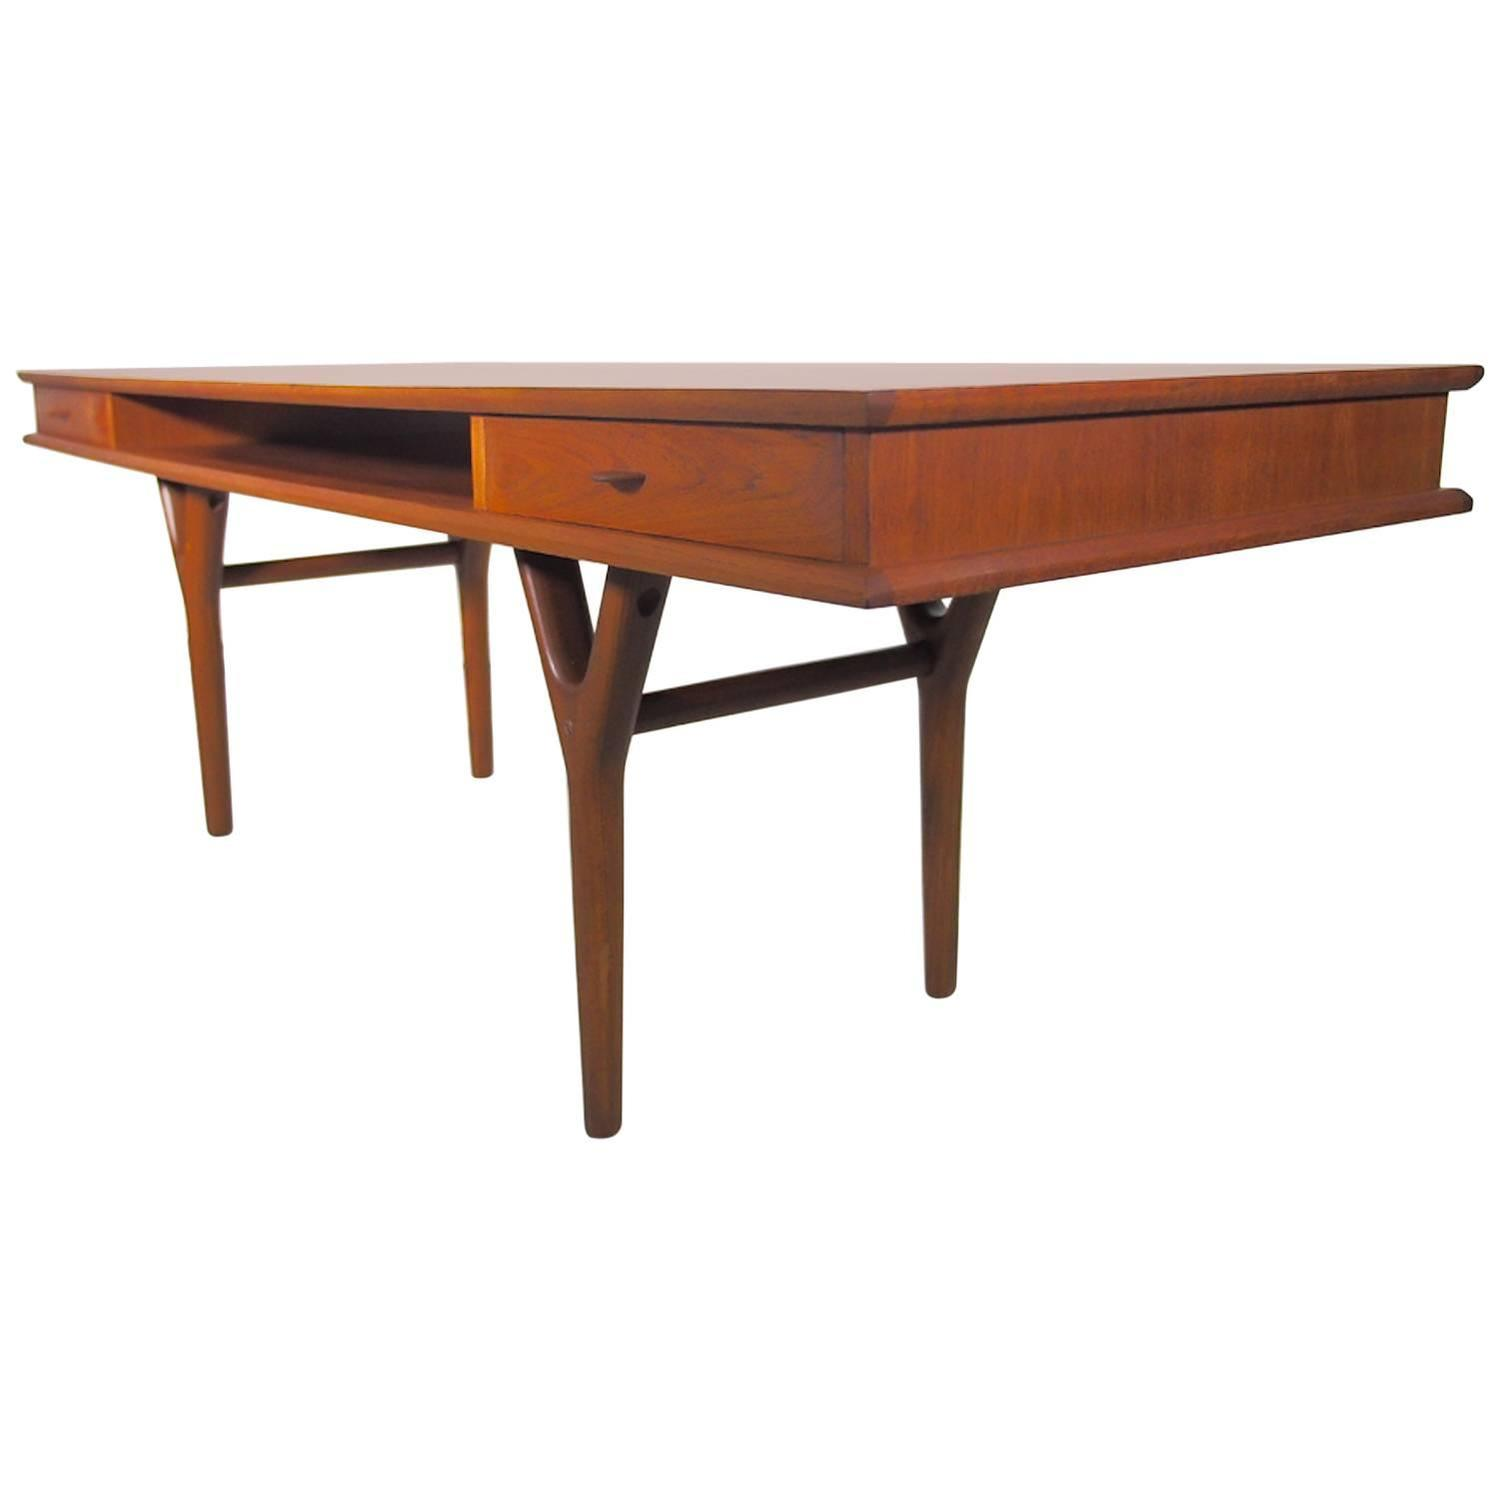 Coffee Table With Drawers Sale: Danish Rectangular Teak Coffee Table With Drawers For Sale